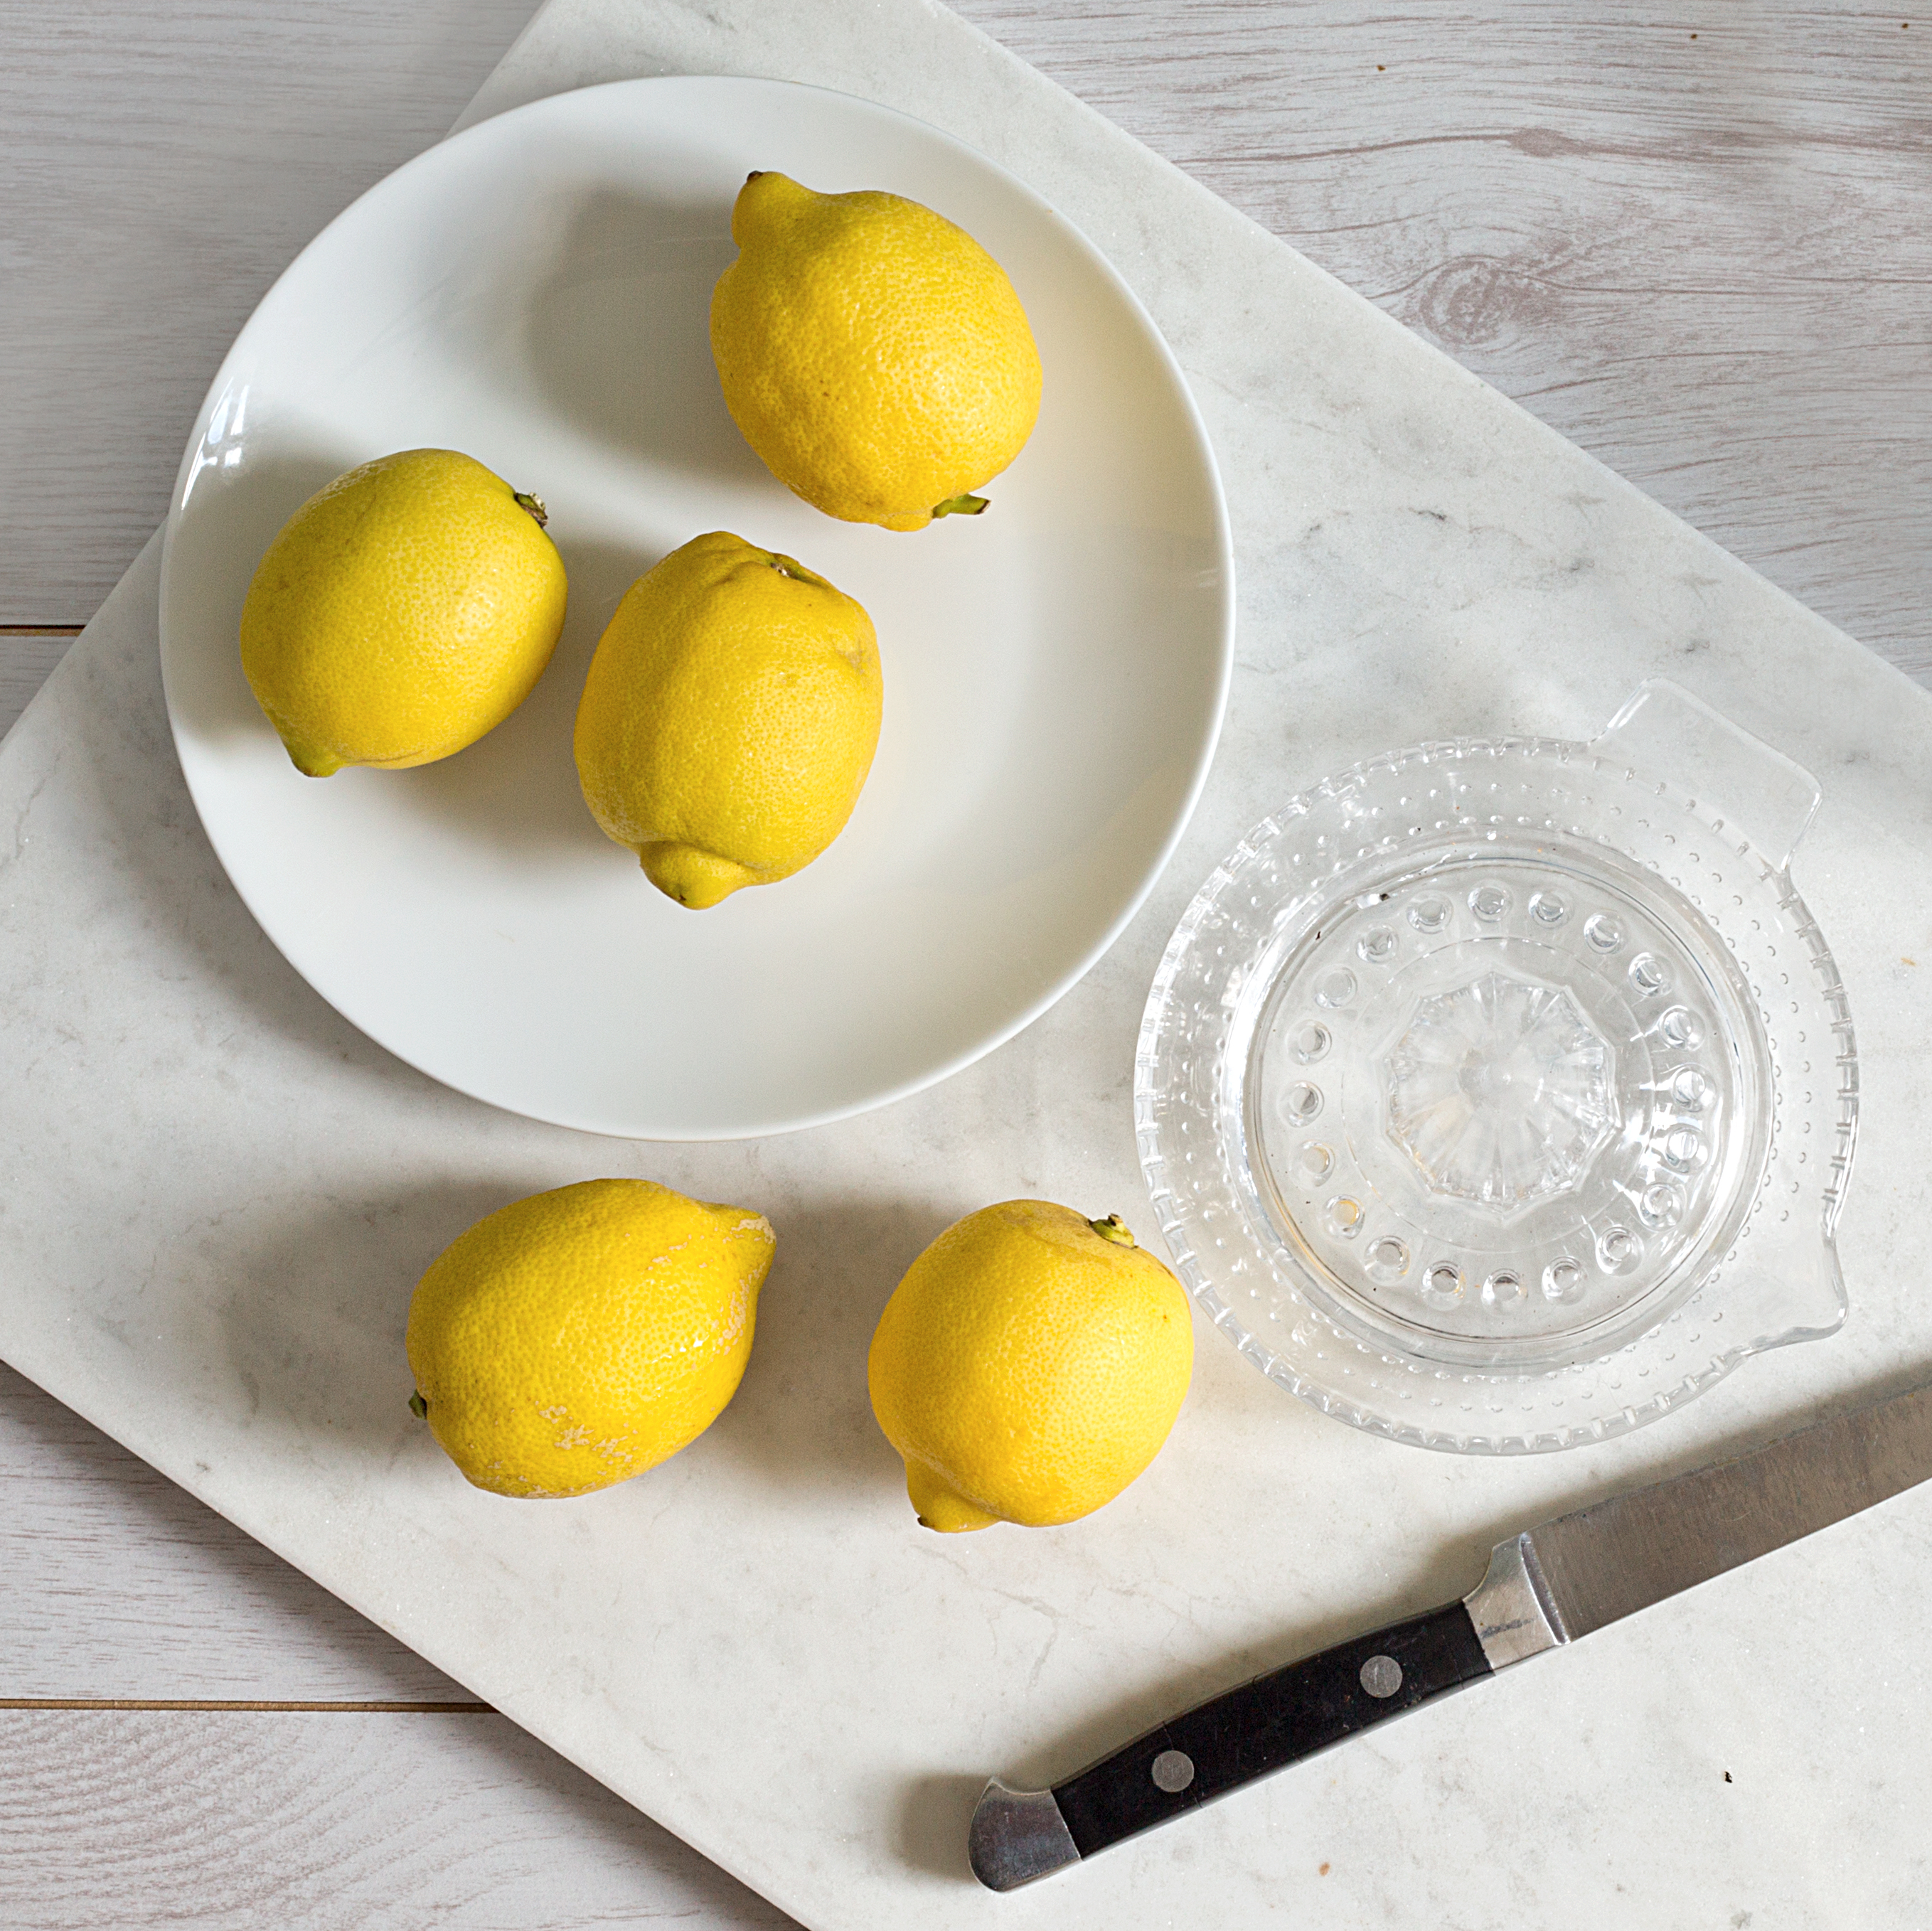 Healthy fruit, lemons, food photography Liverpool. Photographer Patricia NilandUK Food Photographer, London, England, Liverpool, Manchester, England, London, Food photography, Magazine, food production